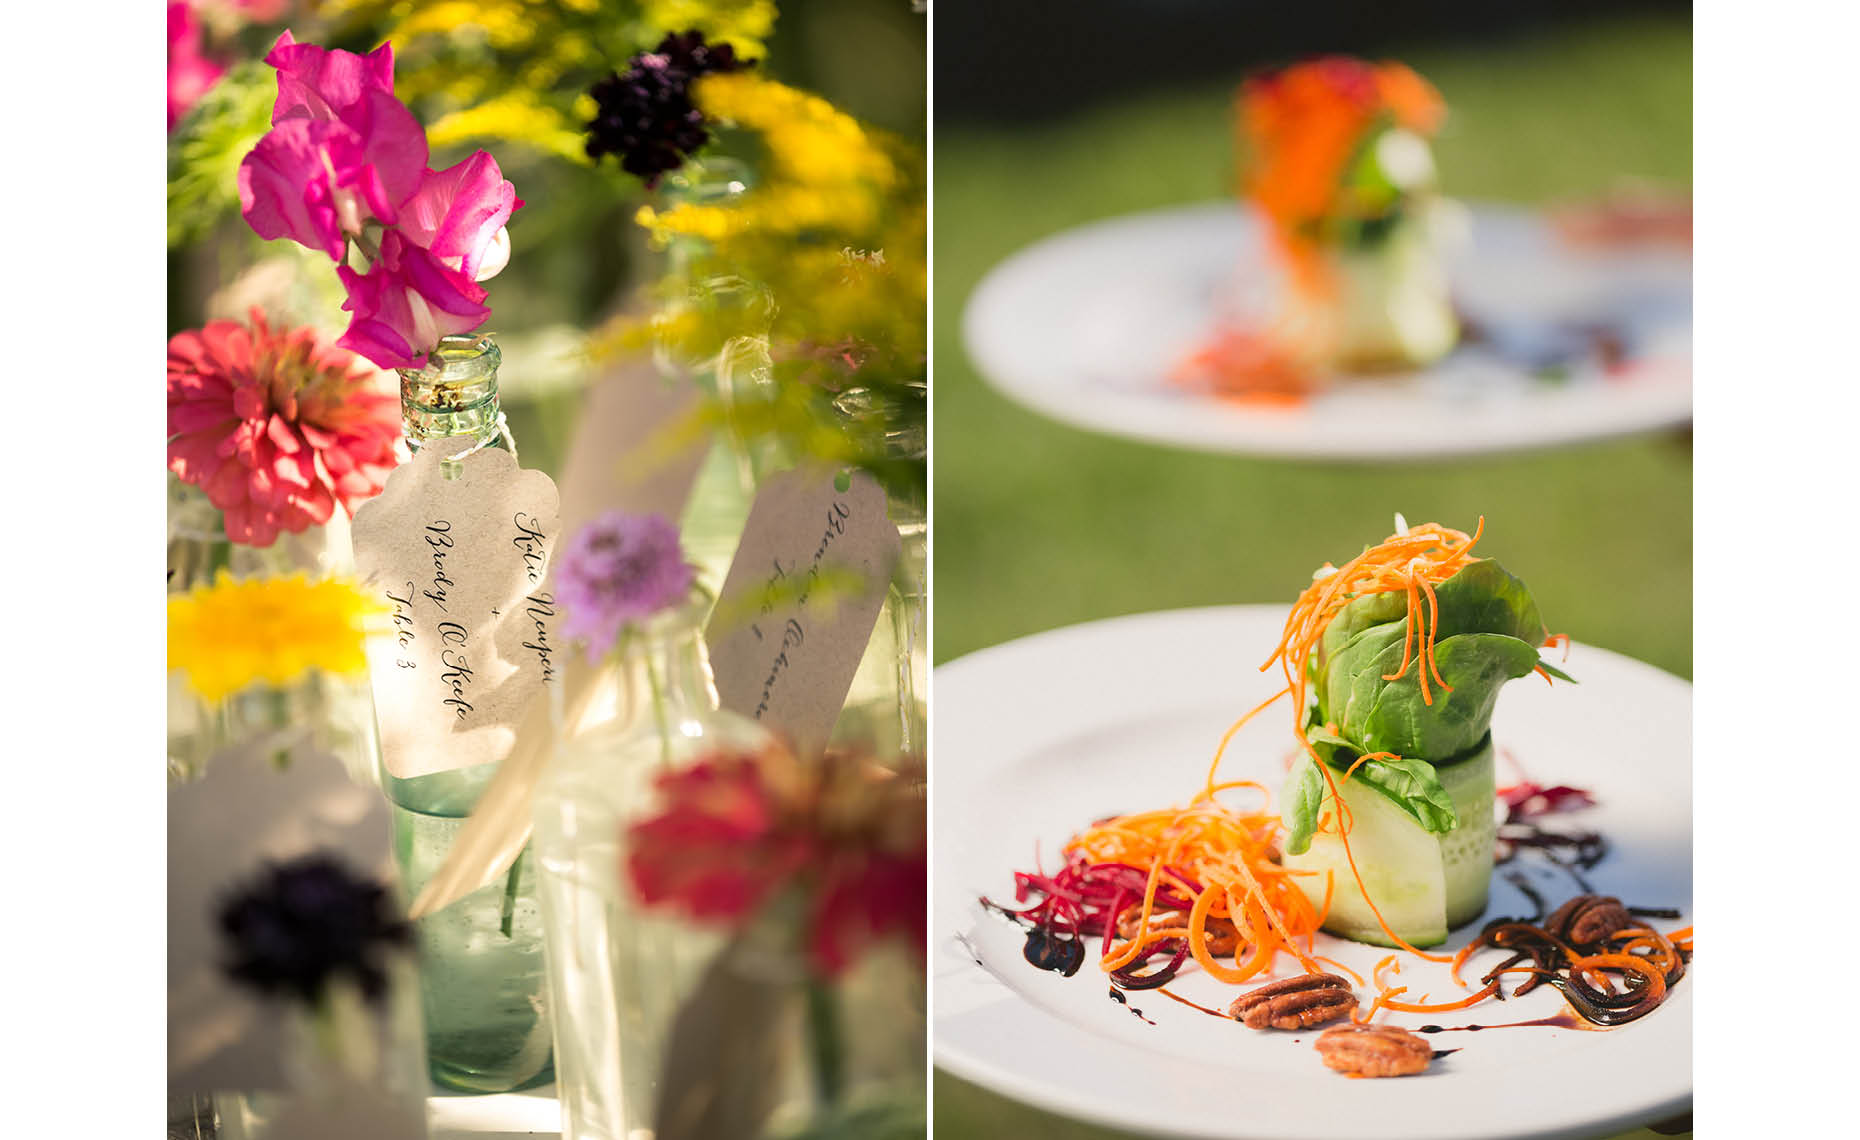 Vintage style organic wedding flowers and food in Whistler.